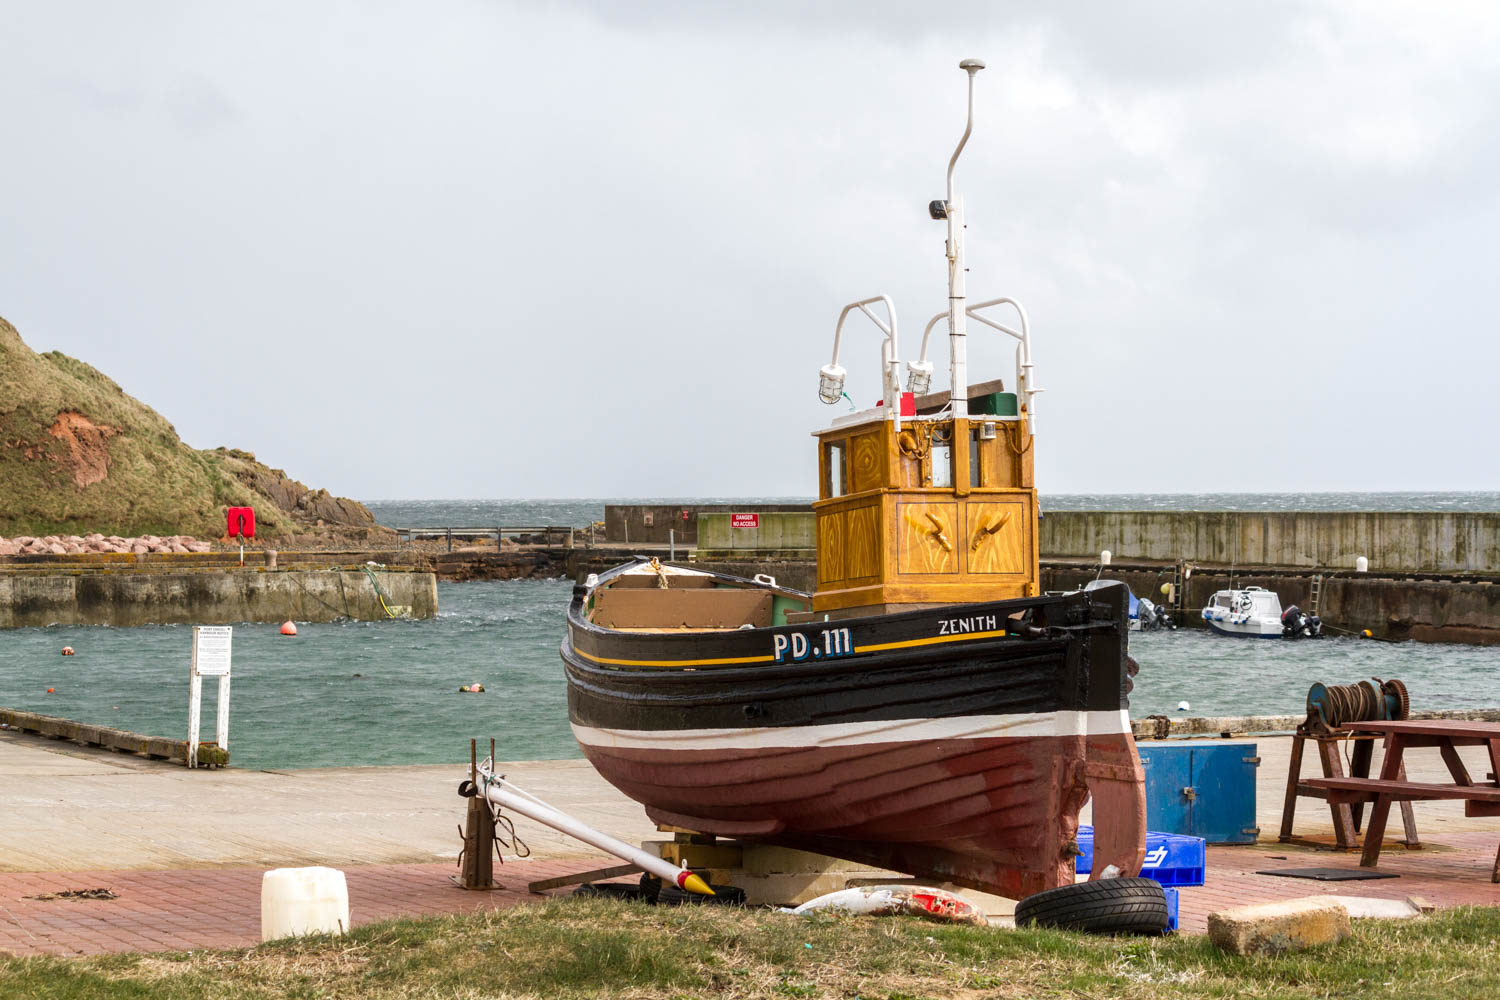 A cold day at Port Erroll